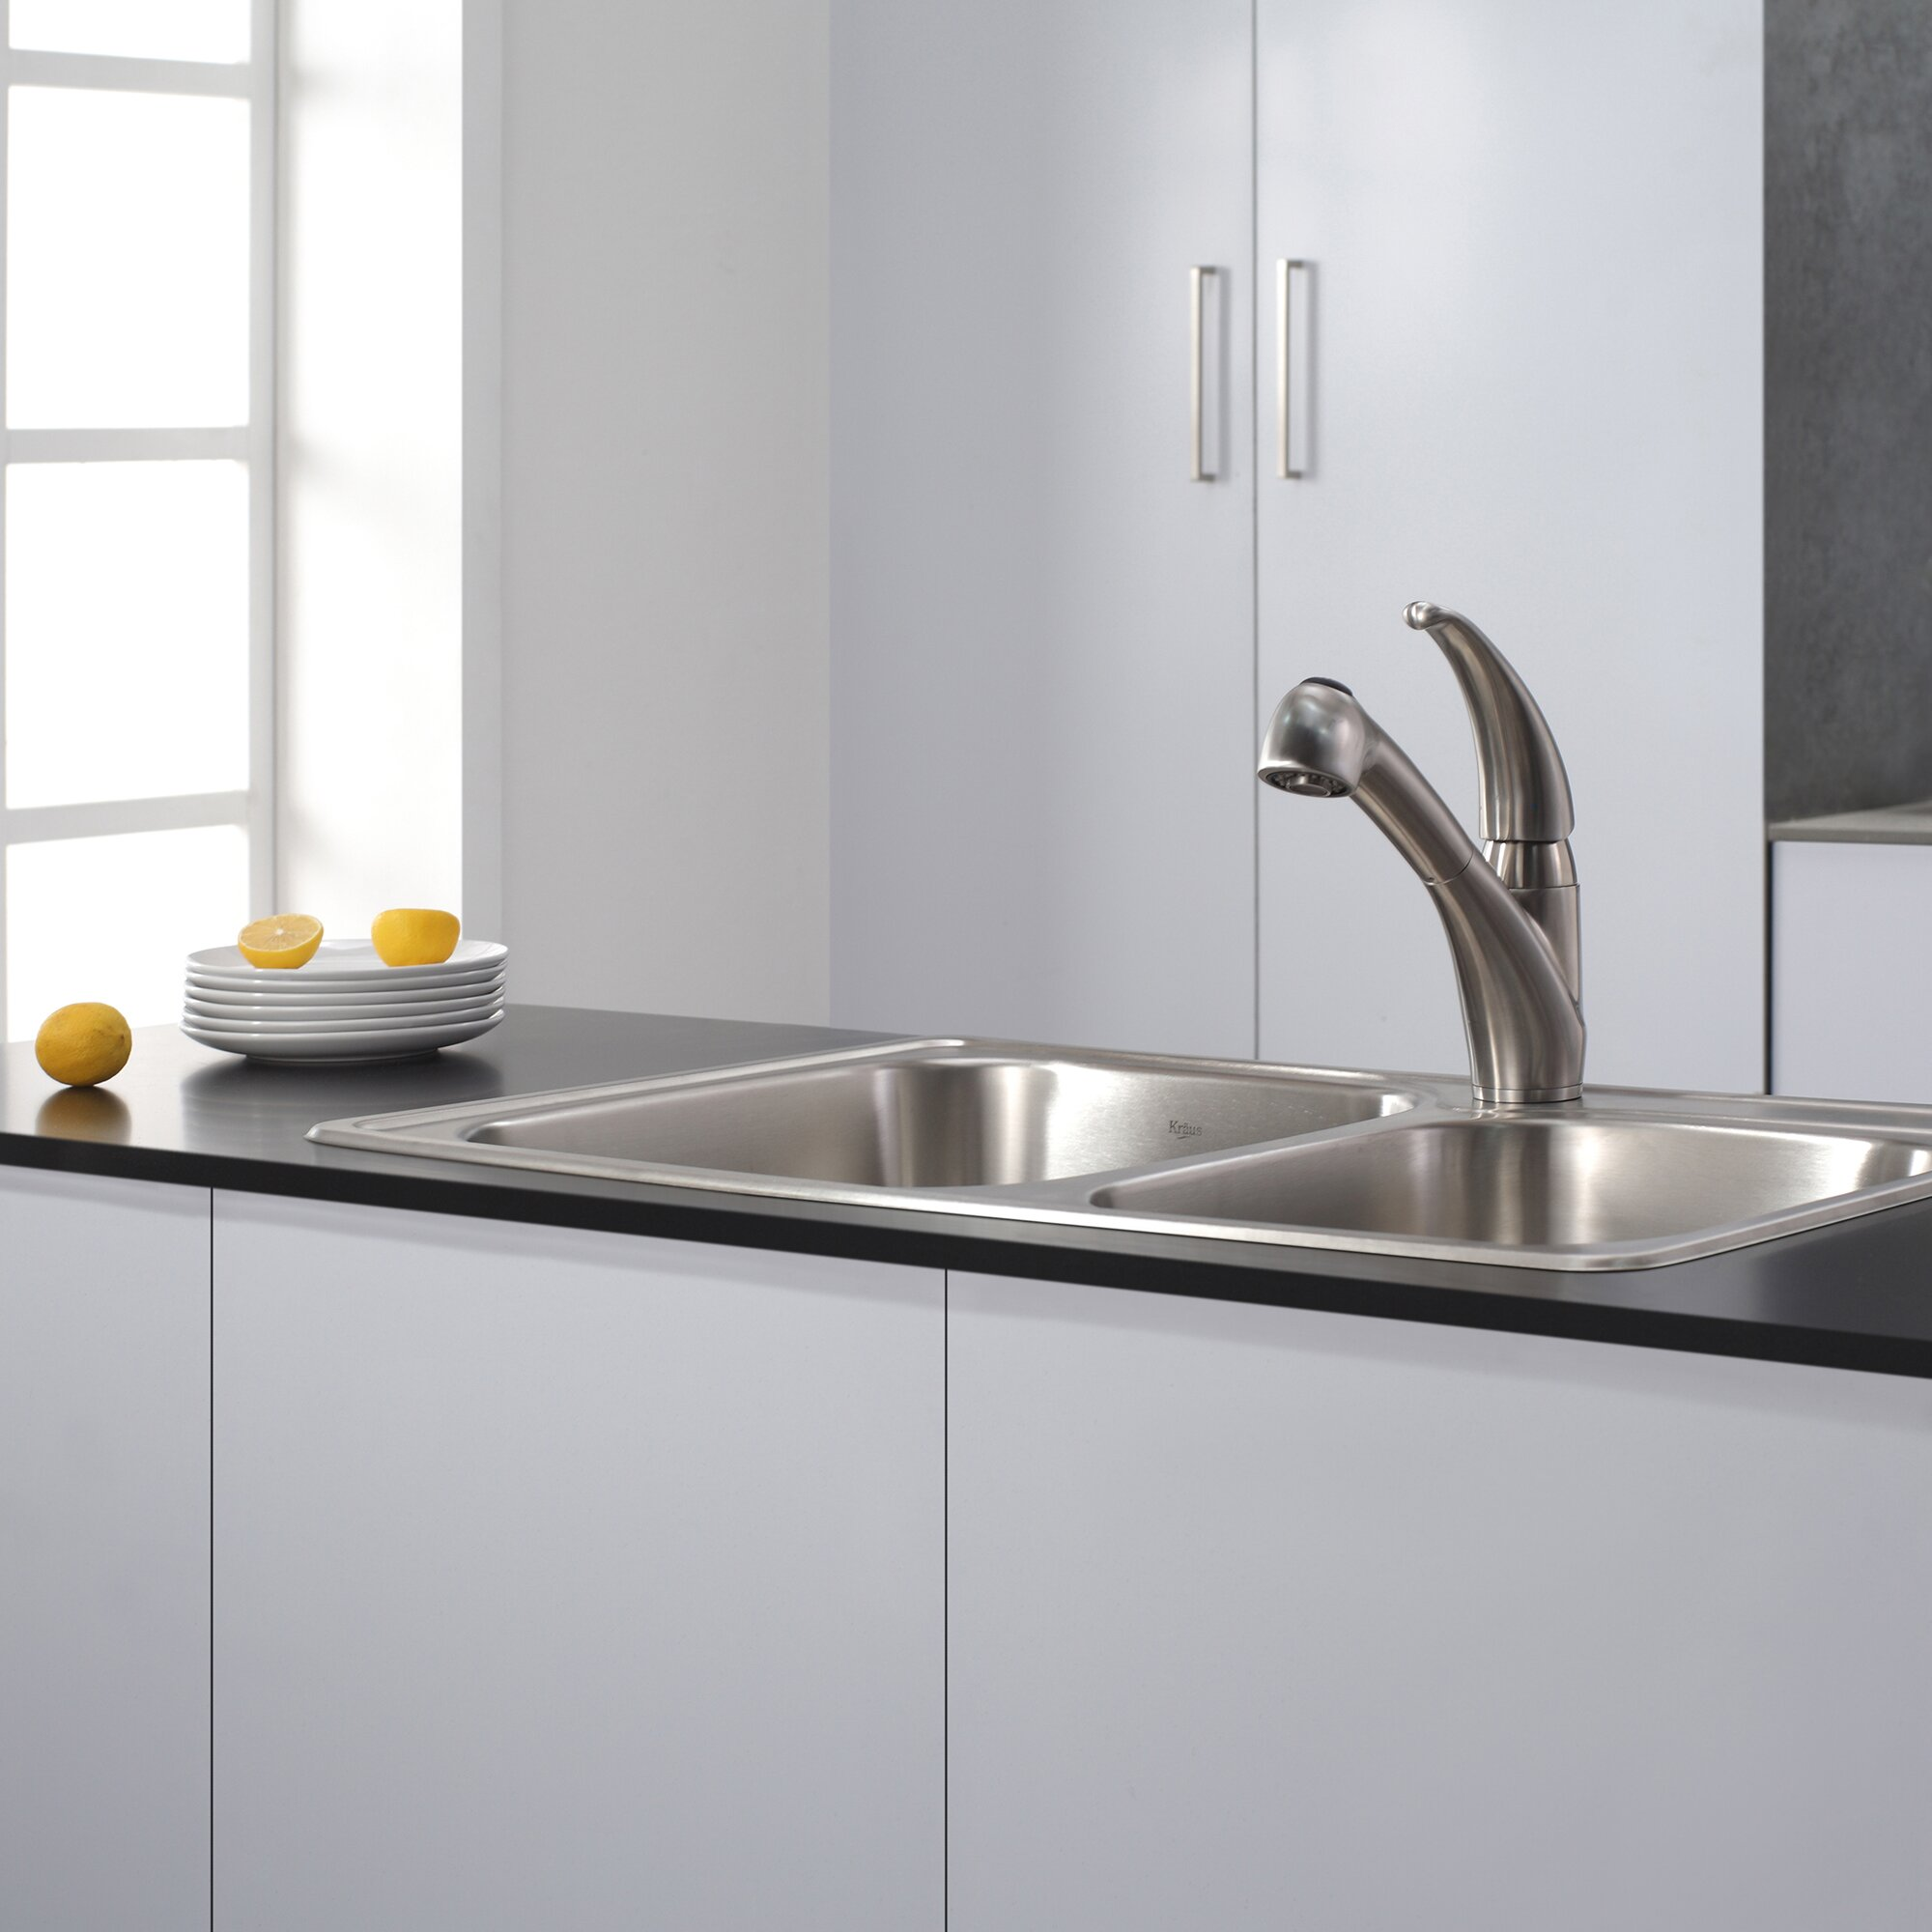 kraus single handle single hole kitchen faucet with pull kraus single handle single hole kitchen faucet with pull